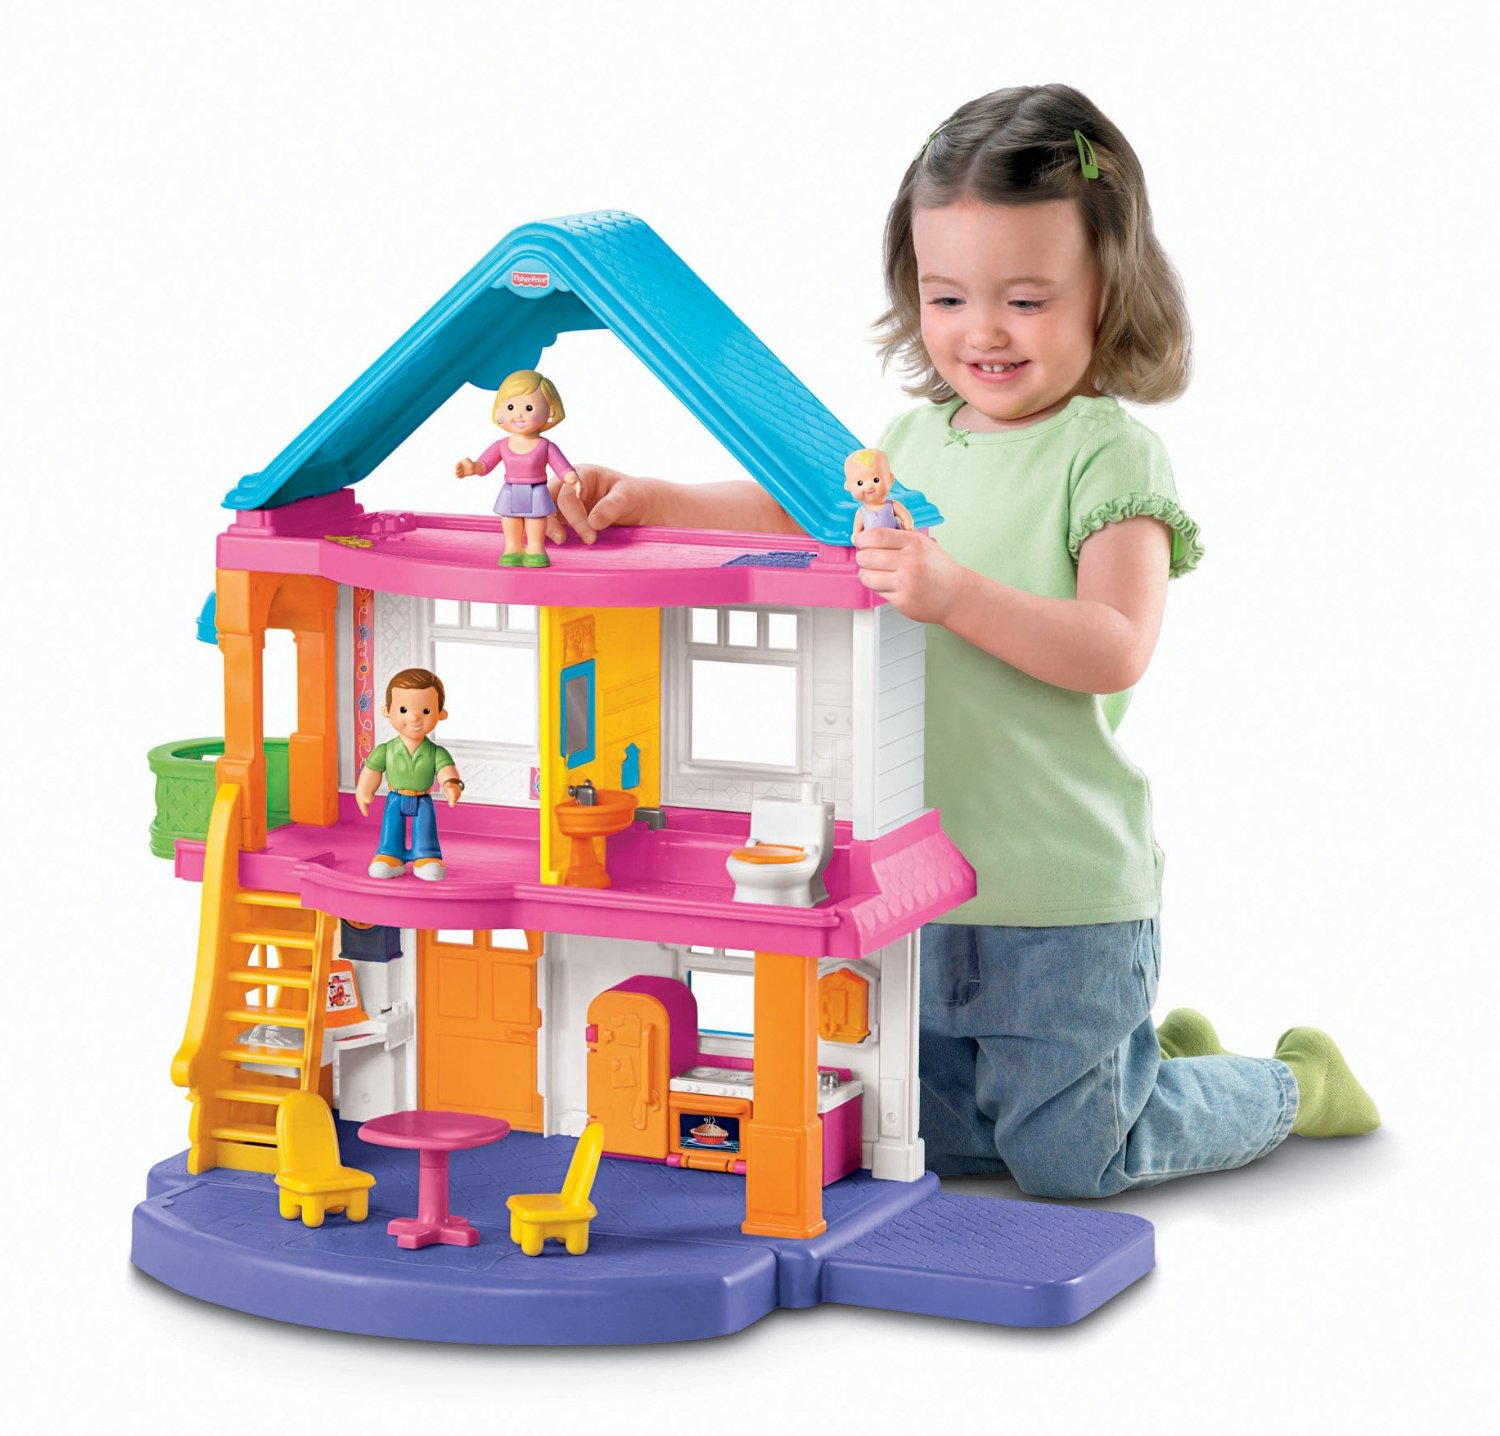 Endearing Toddlers 2018 We Review Our S Fisher Price Dollhouse 1980 Fisher Price Dollhouse 2000 Dollhouse baby Fisher Price Dollhouse